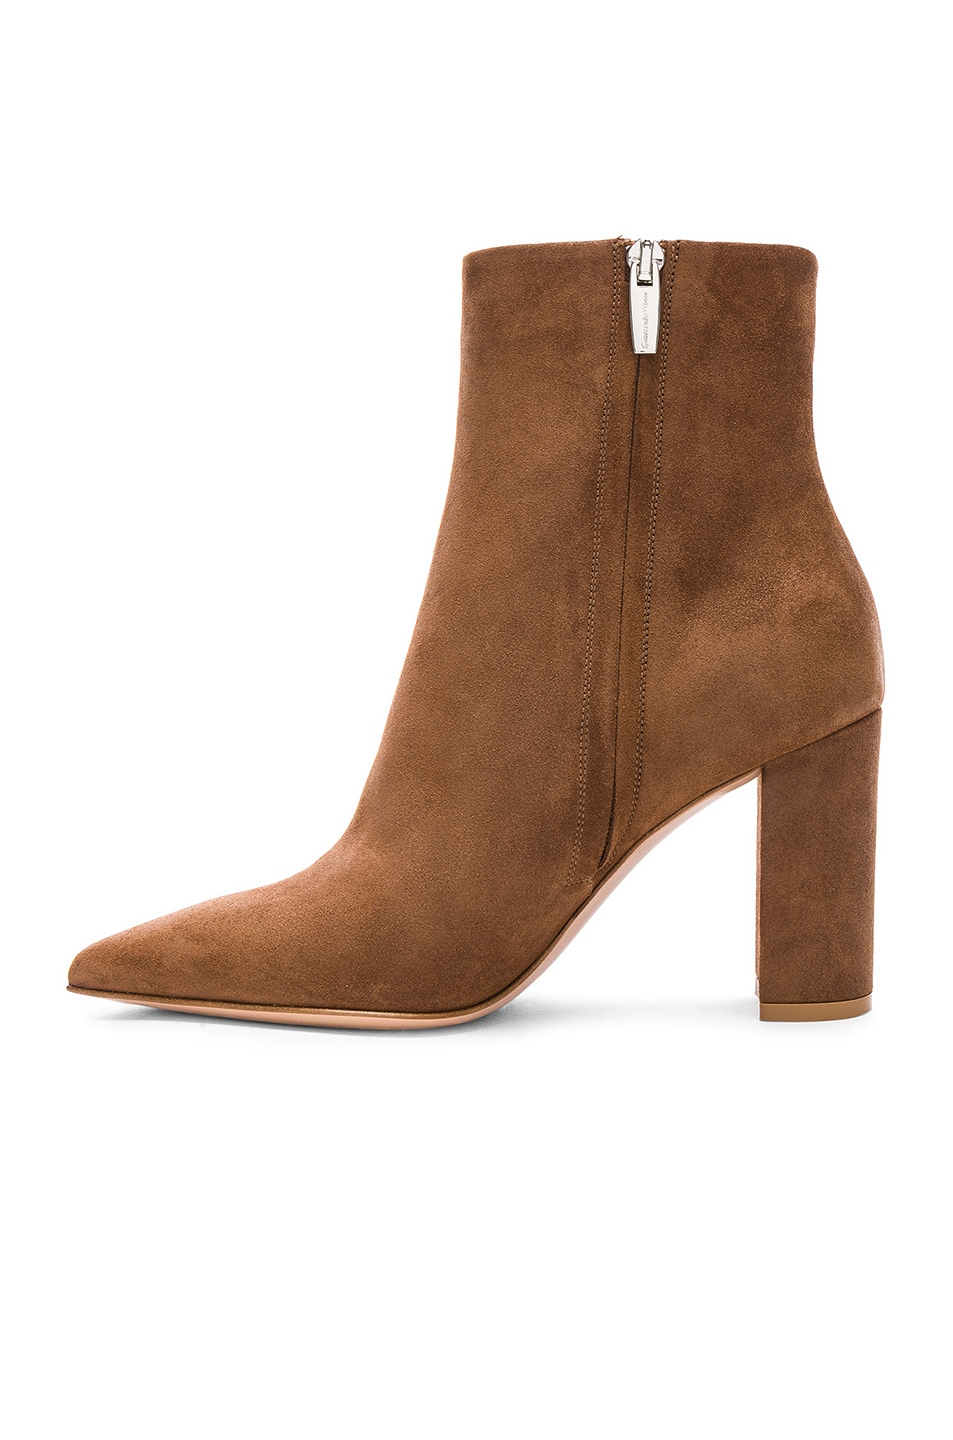 Image 5 of Gianvito Rossi Suede Piper Ankle Boots in Texas